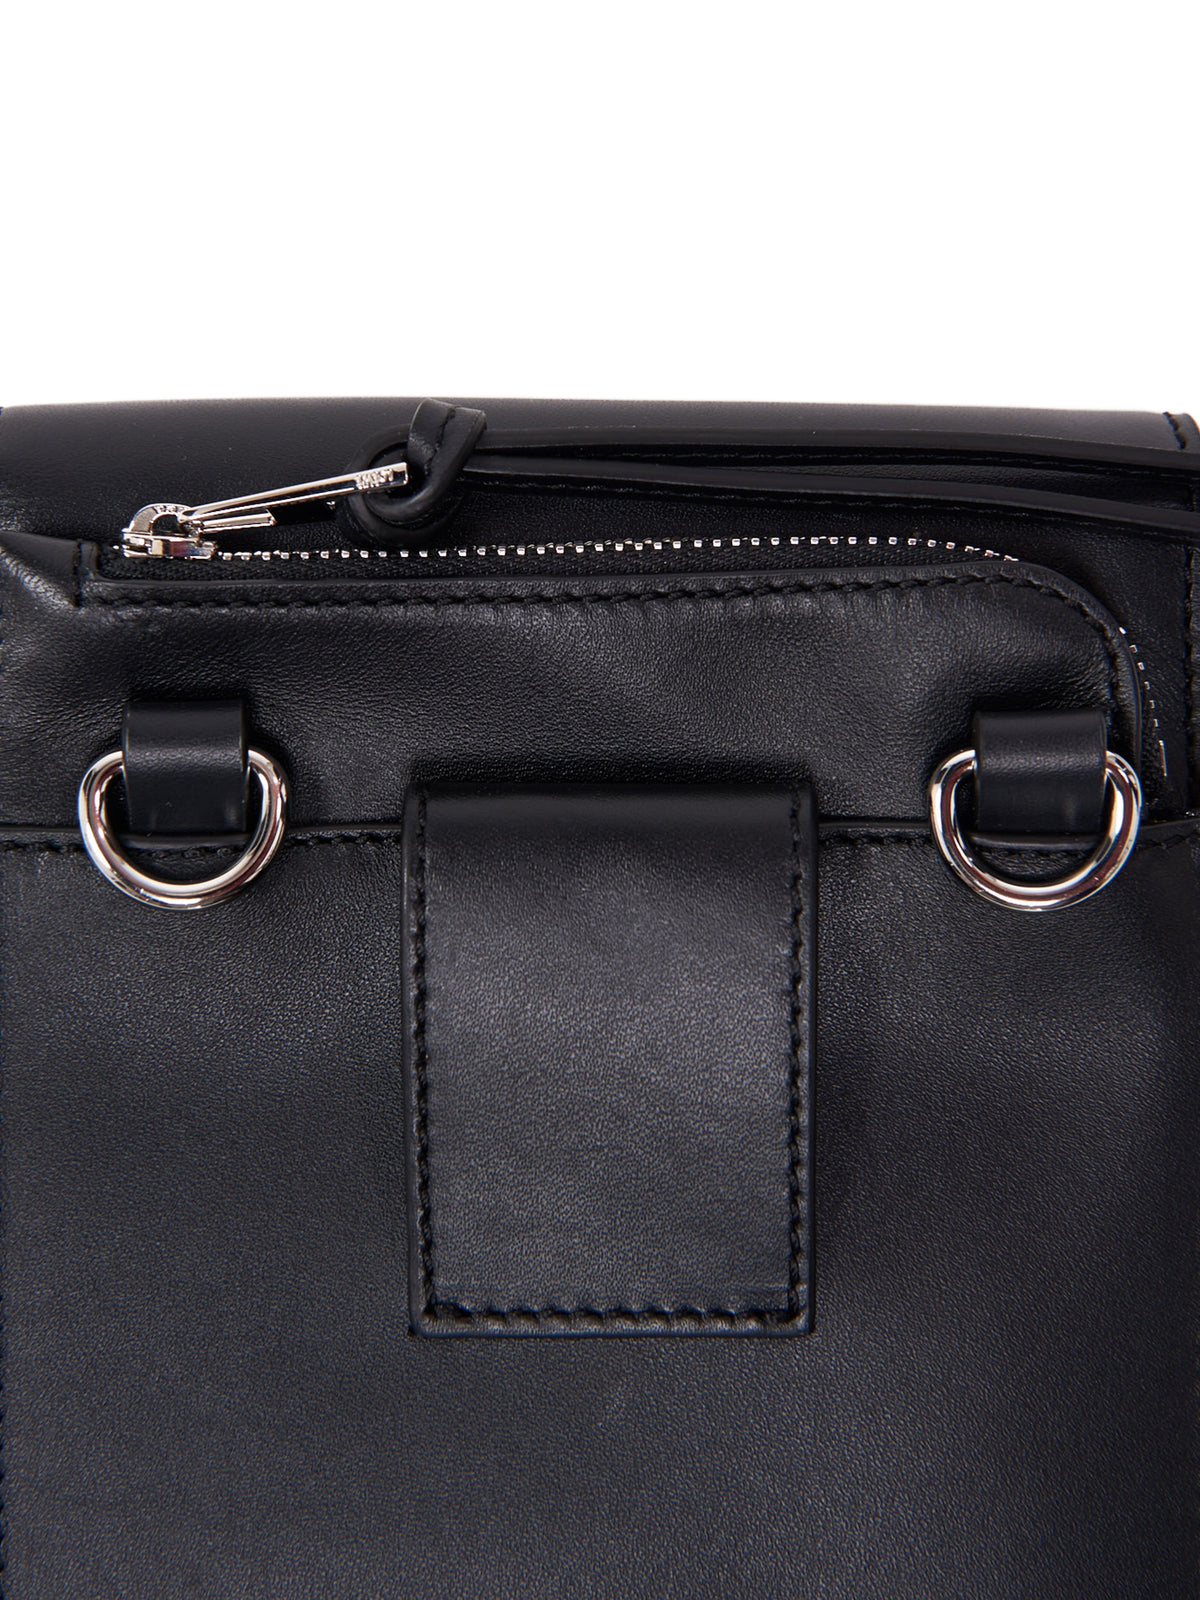 Large Pouch (335-54-Z33-BLACK)